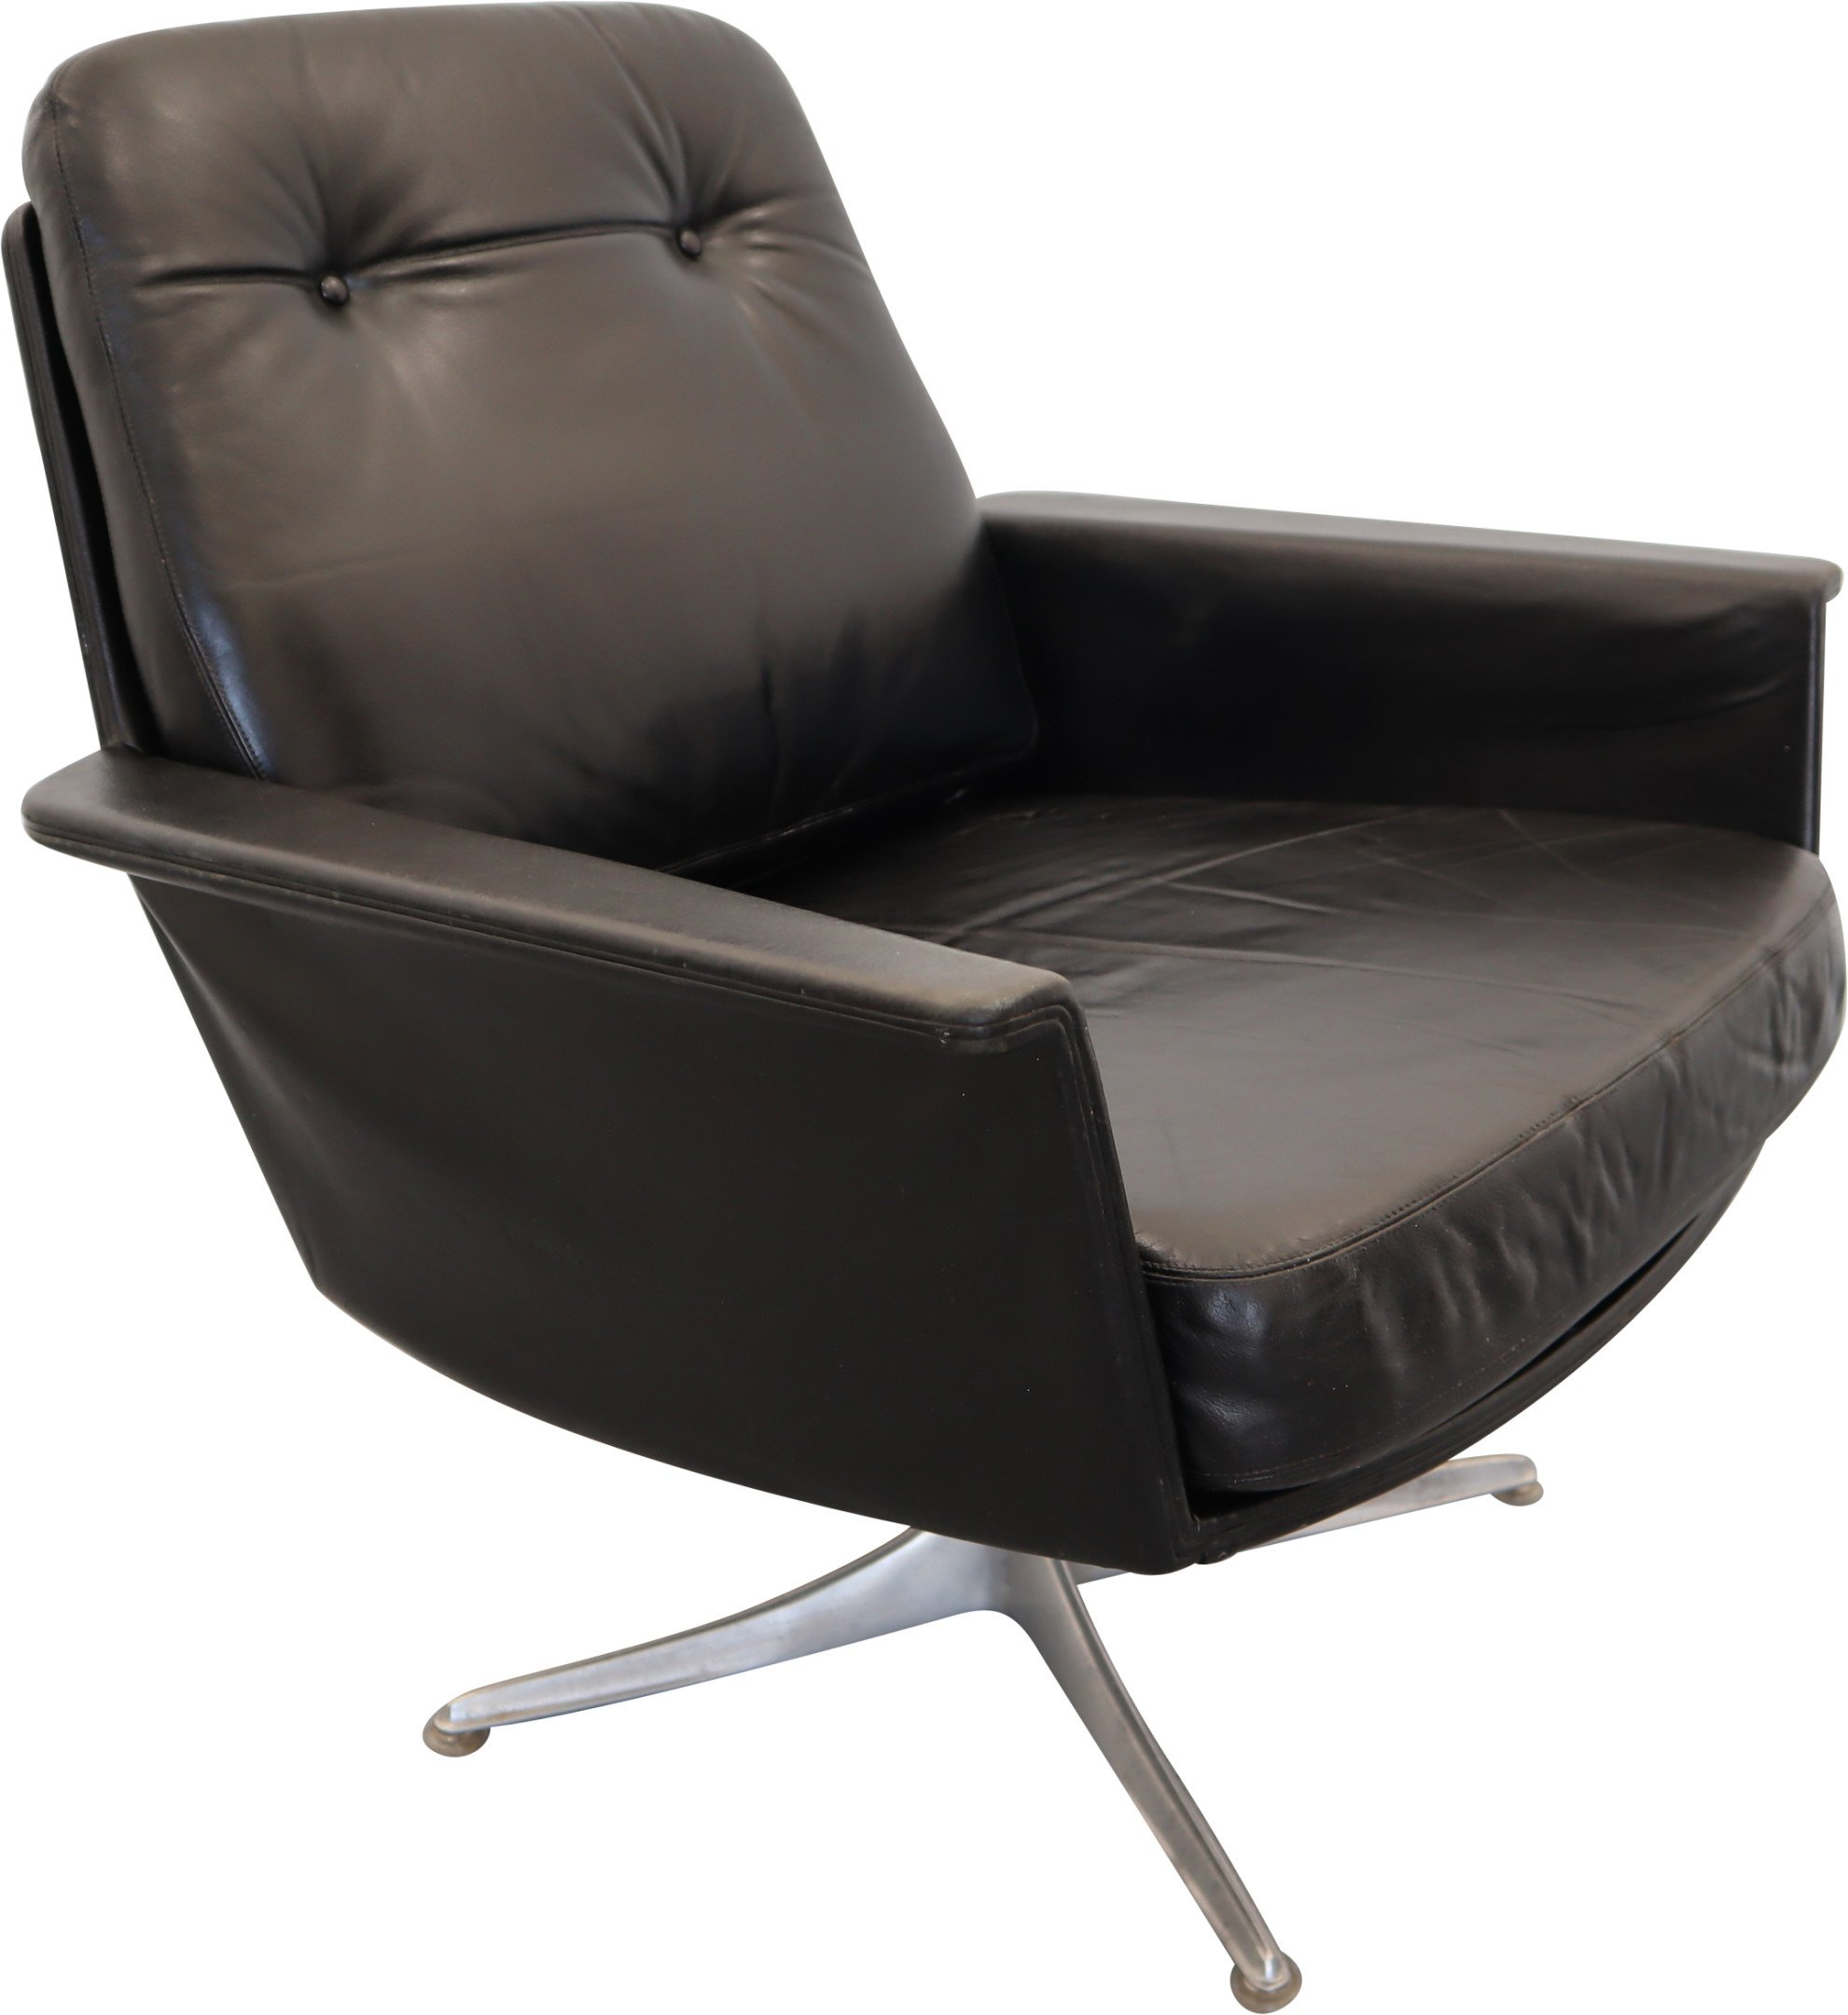 Sedia Leather Swivel Armchair by H. Brüning, COR, Germany, 1960s